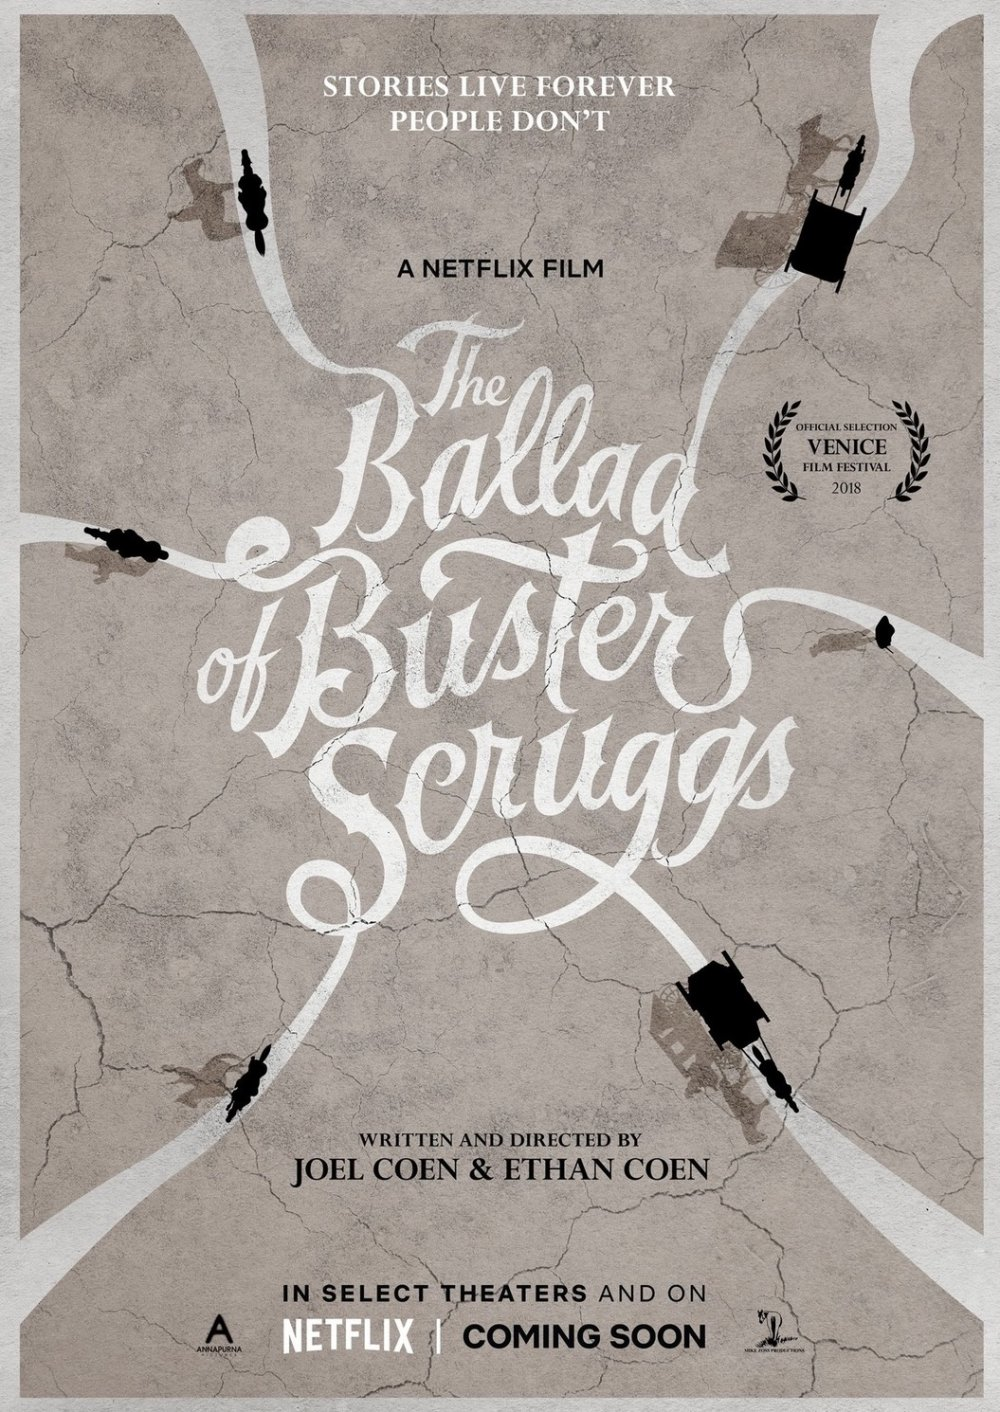 <strong>The Ballad of Buster Scruggs</strong> – This anthology of a half-dozen western tales is a six-shooting delight from the Coen brothers